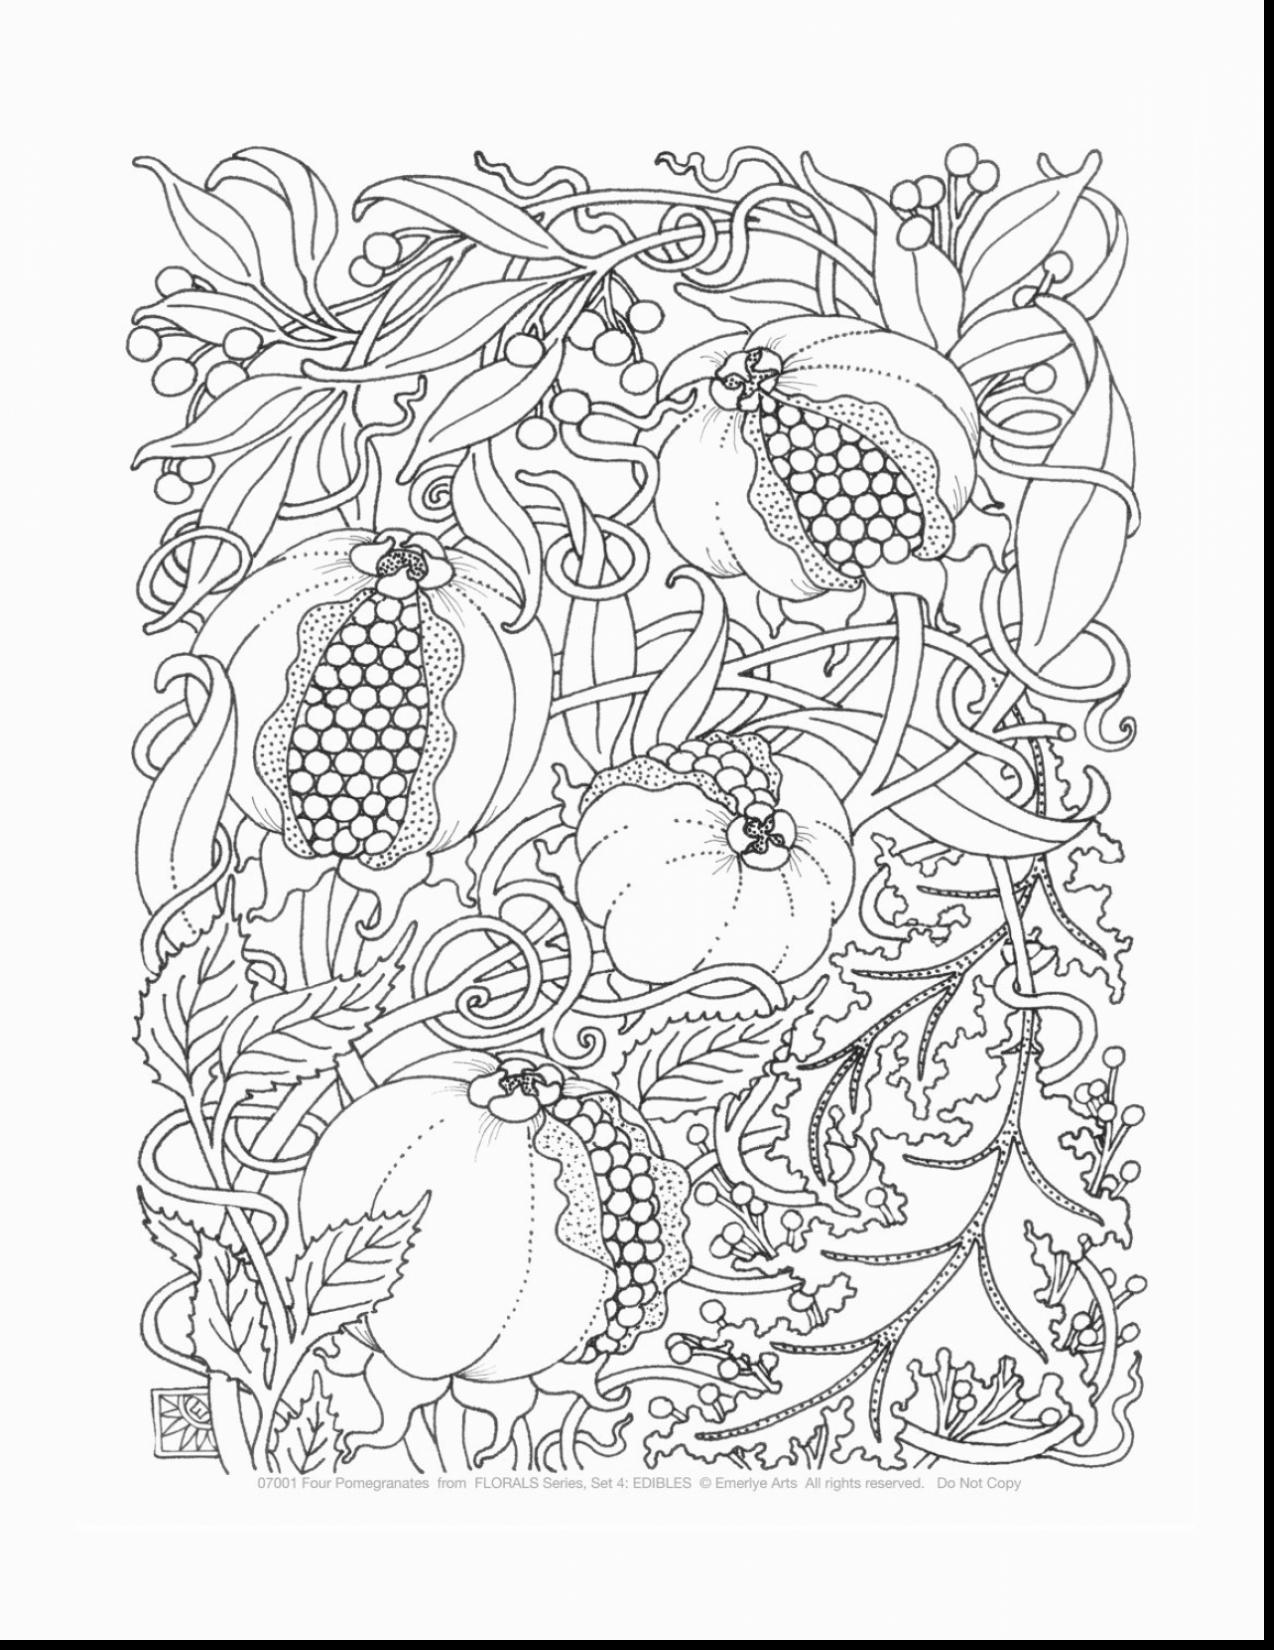 Complicated Coloring Pages Online at GetDrawings.com | Free for ...